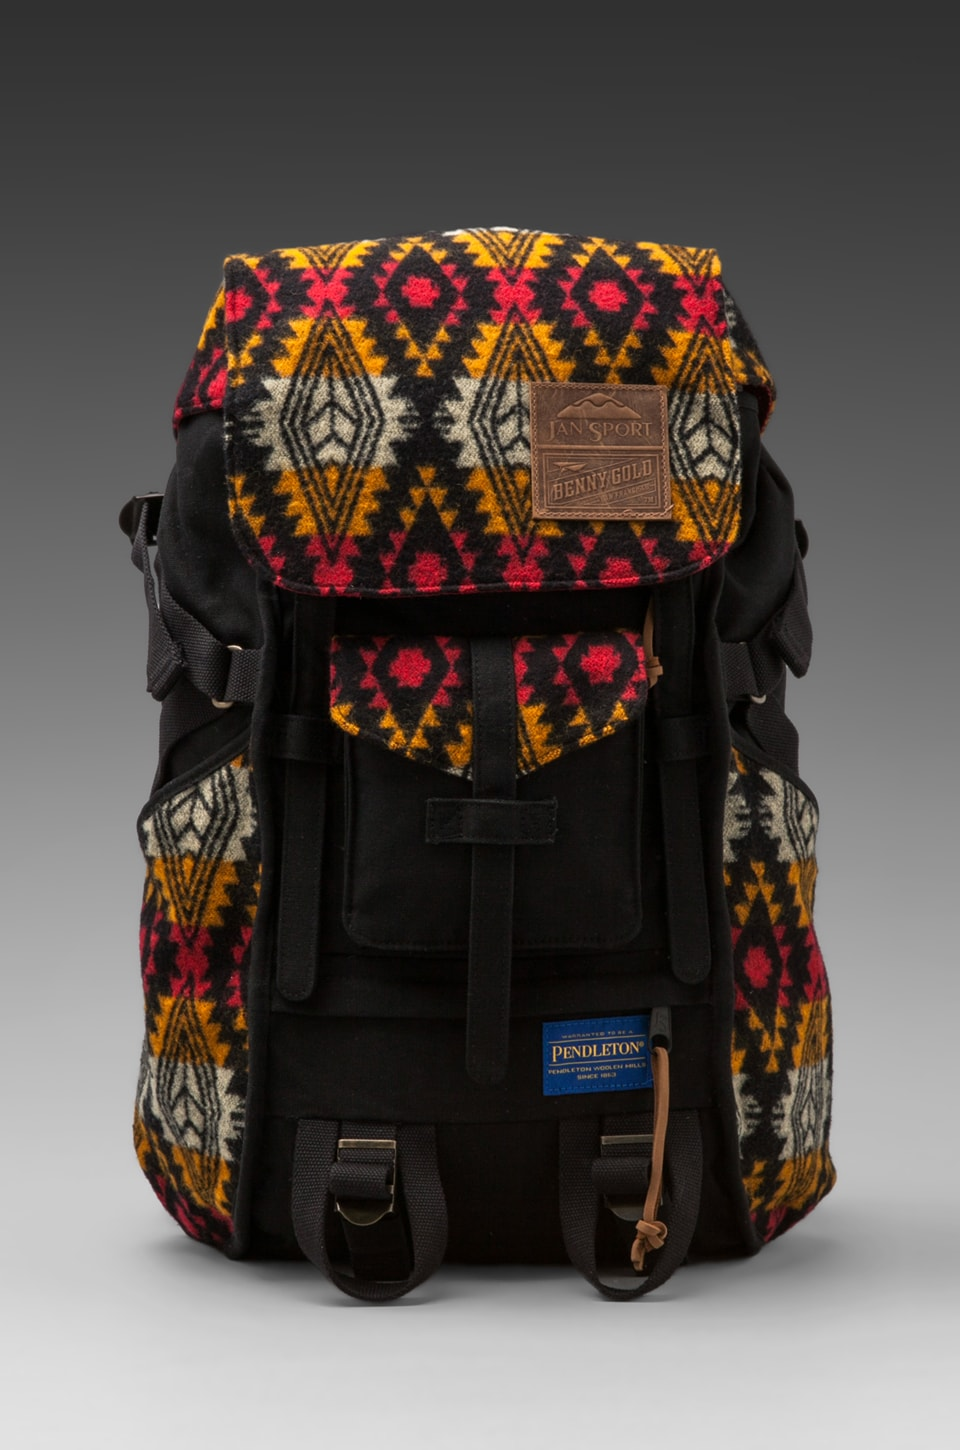 Jansport x Pendleton Oswego Backpack in Print